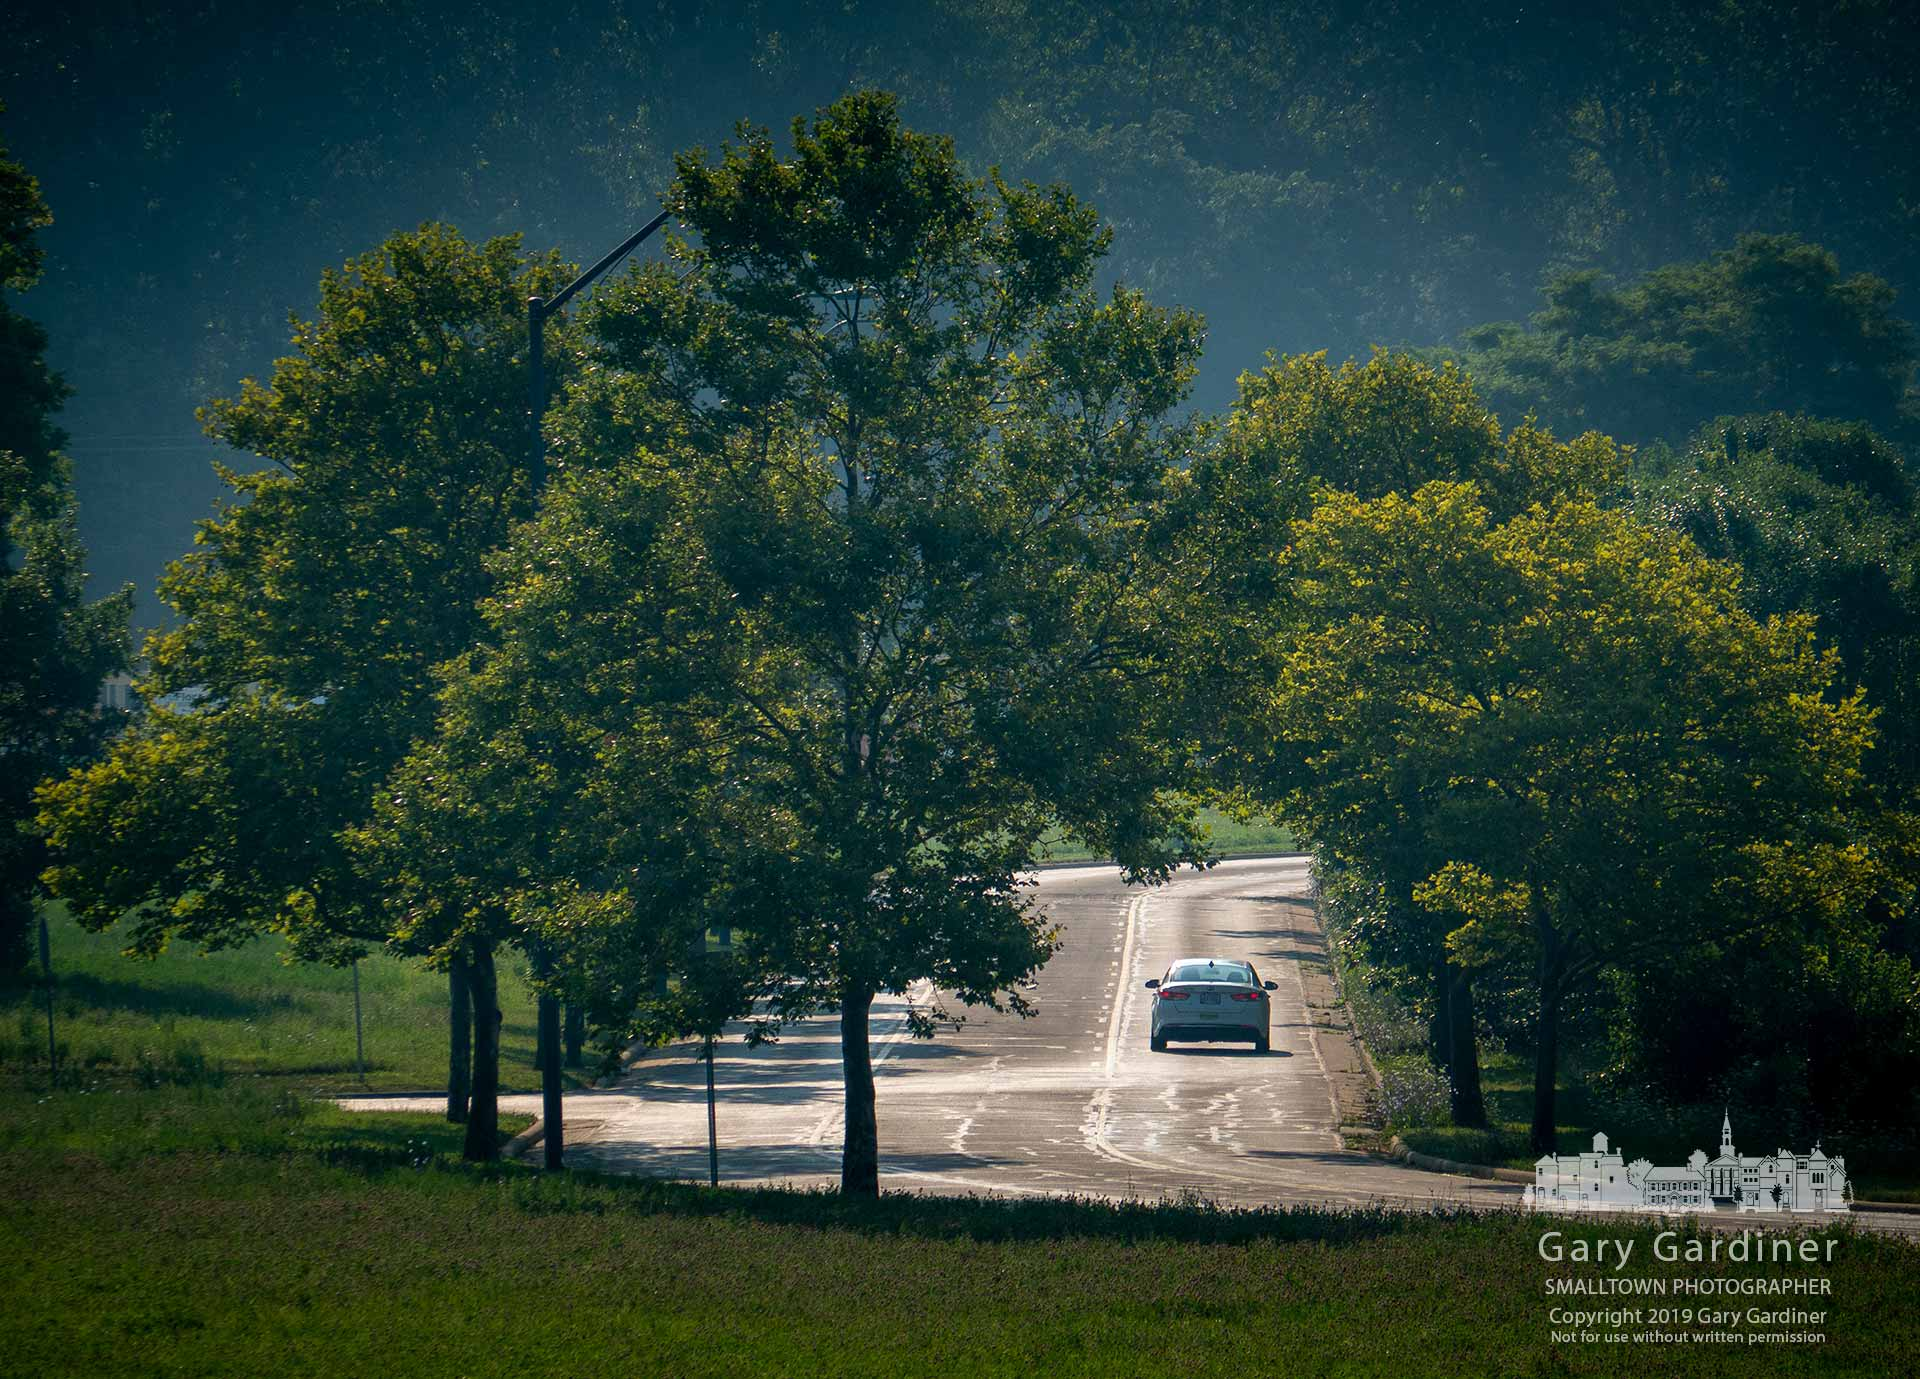 A lone driver travels down Cooper Road into the morning sun. My Final Photo for July 29, 2019.